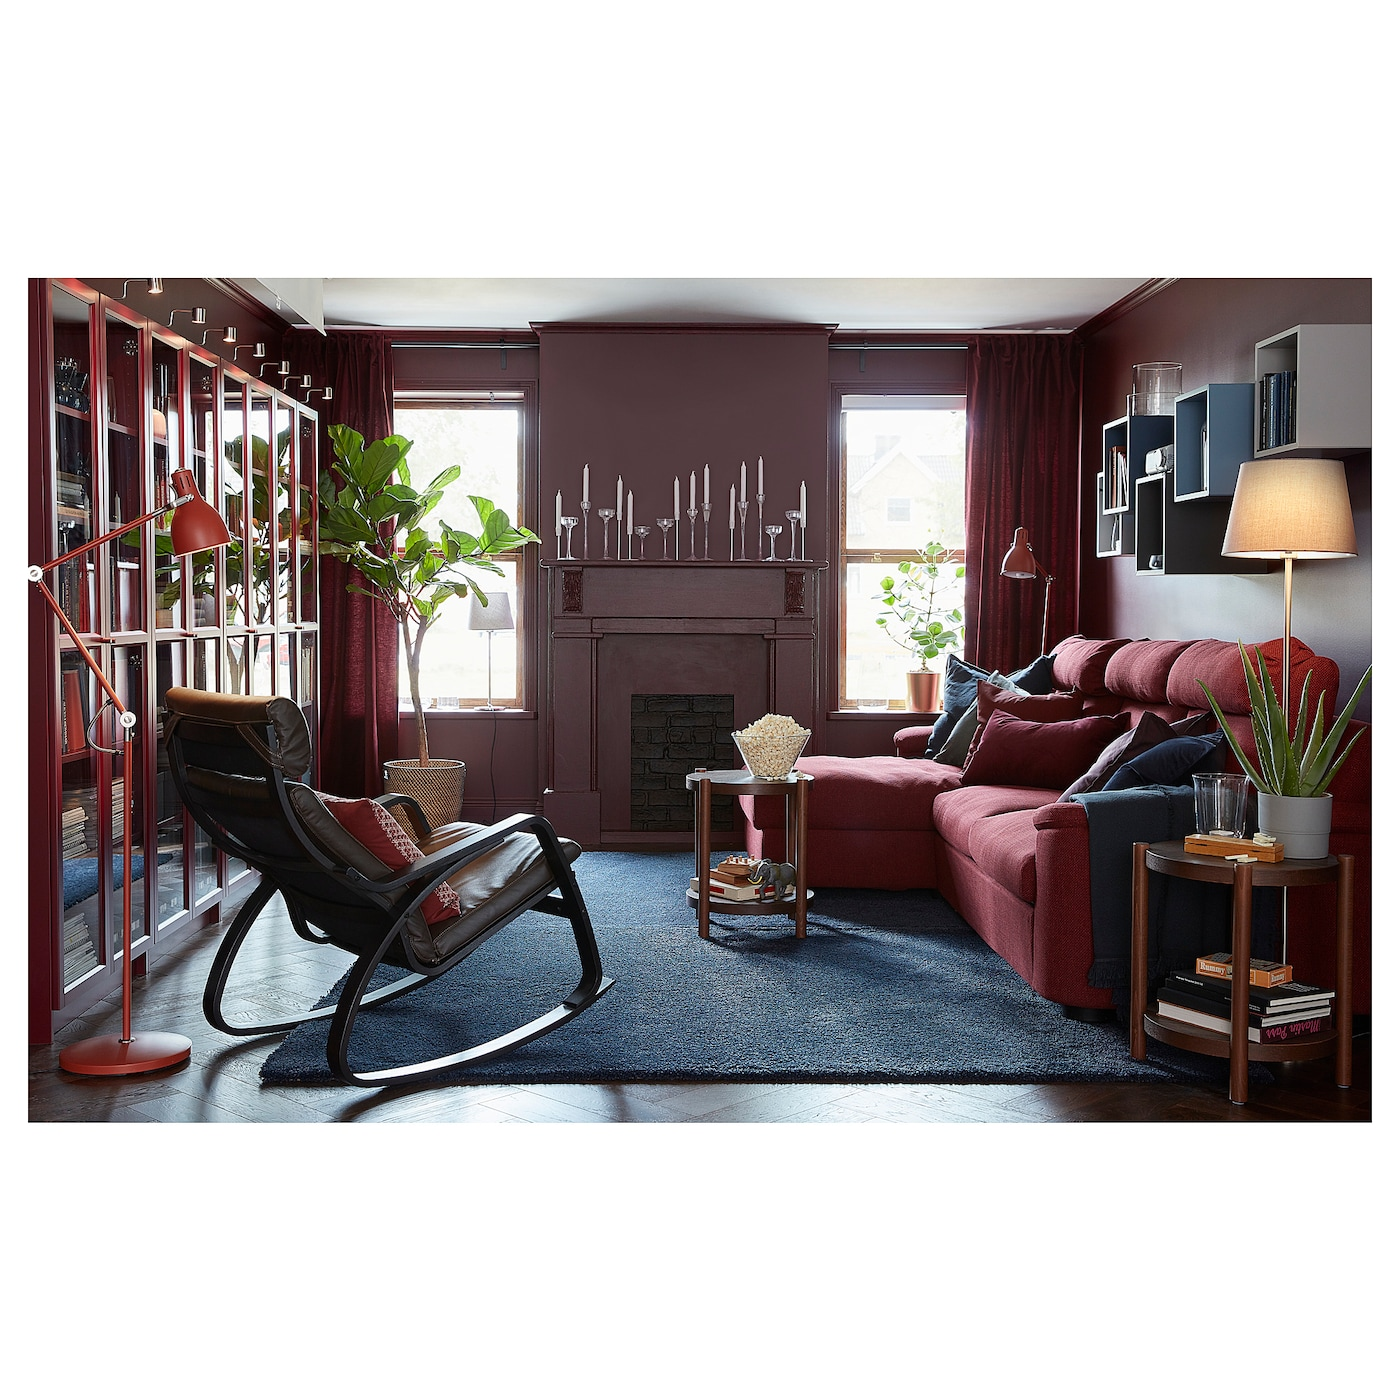 LIDHULT 3-seat sofa - with chaise longue/Lejde red-brown